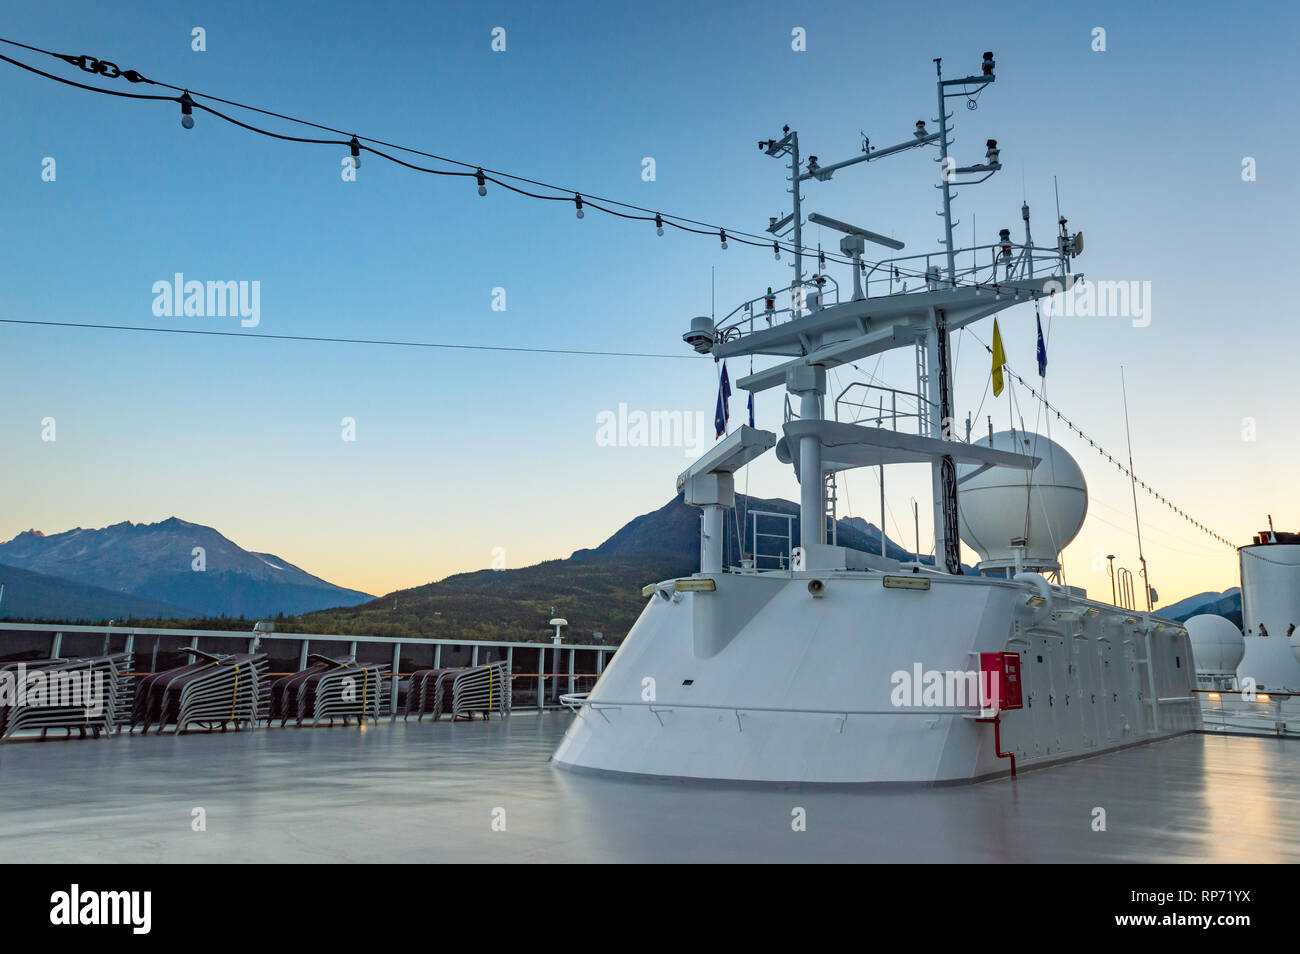 September 15, 2018 - Skagway, AK: Navigation, radar and positioning structure at sunrise, on top of Holland America's The Volendam cruise ship. - Stock Image